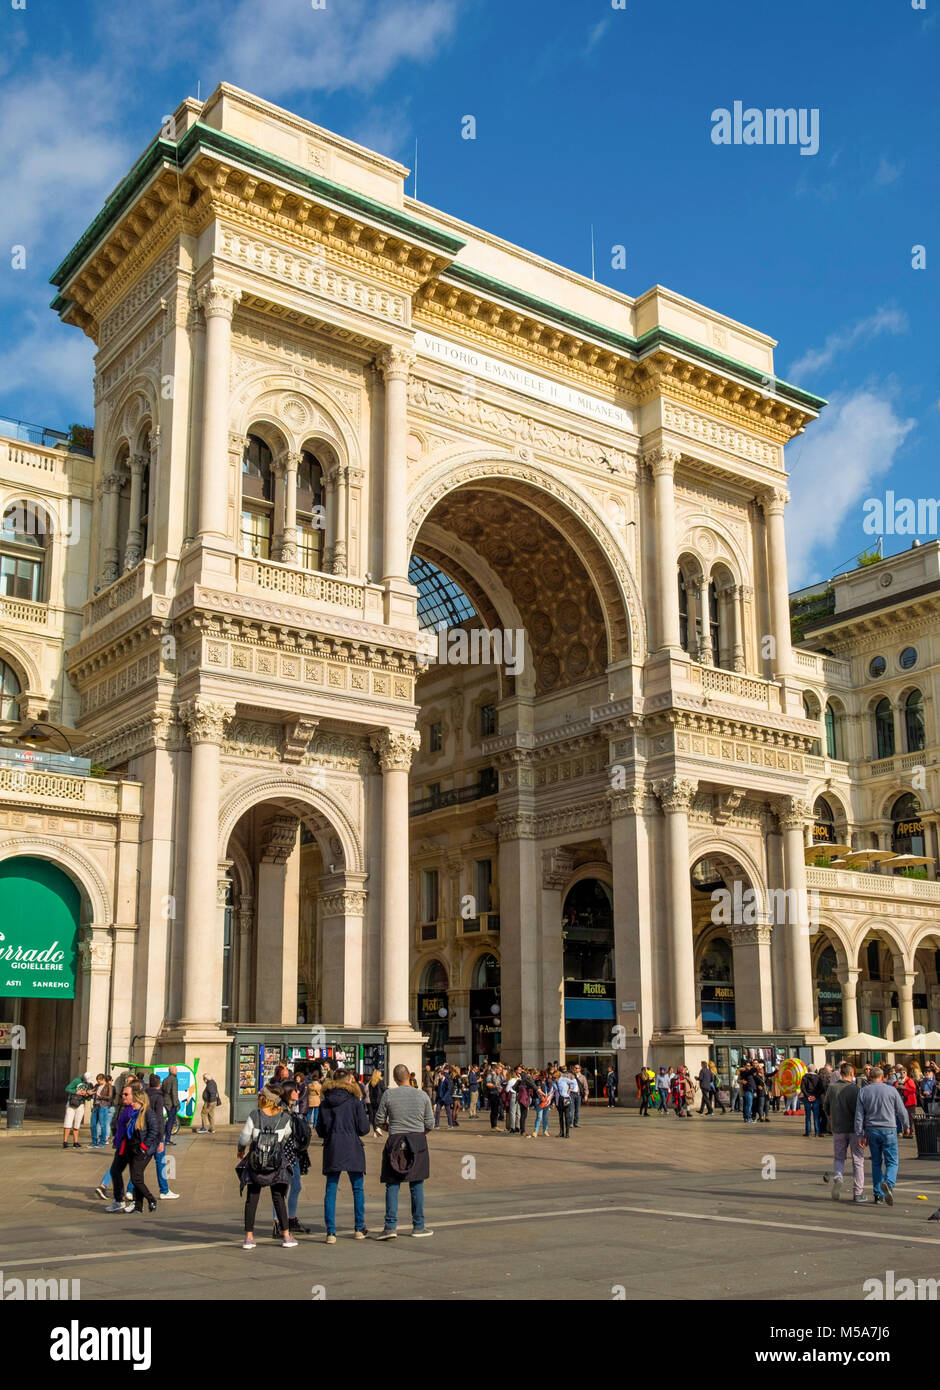 Entrance to Galleria Vittorio Emanuele ll, Milan, Italy - the world's oldest shopping mall - Stock Image